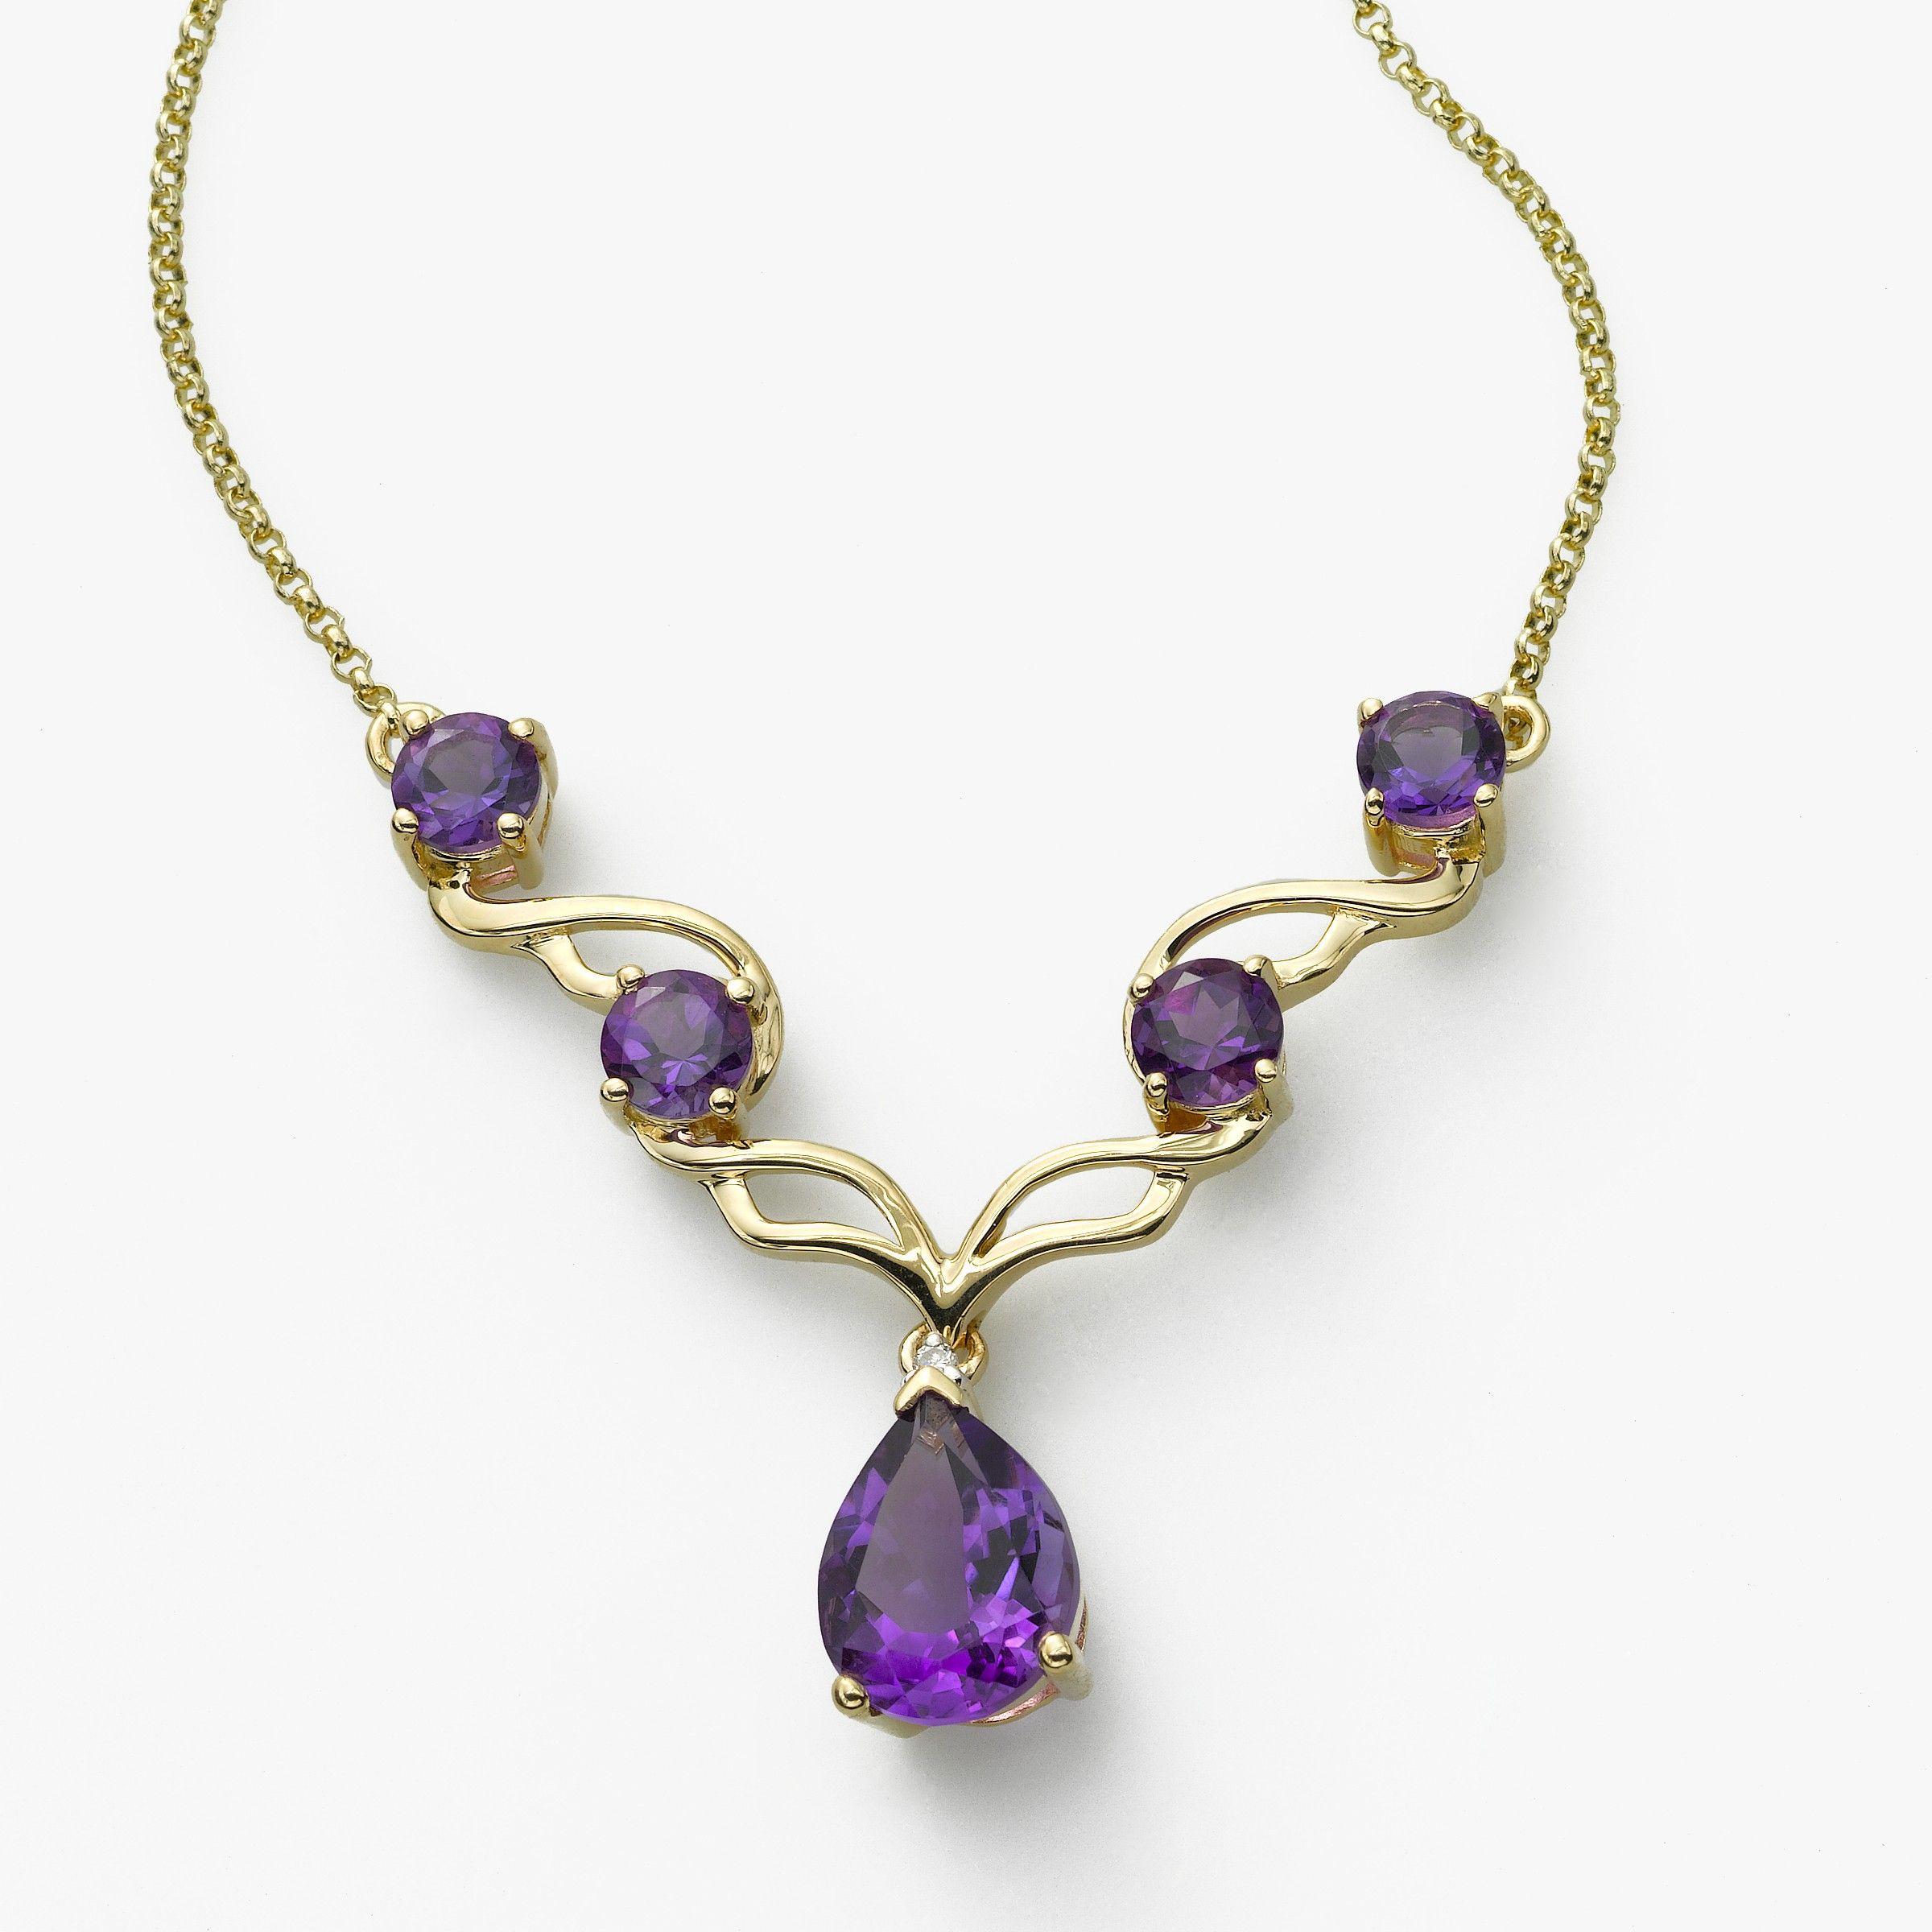 Amethyst and Diamond Necklace, 14K Yellow Gold